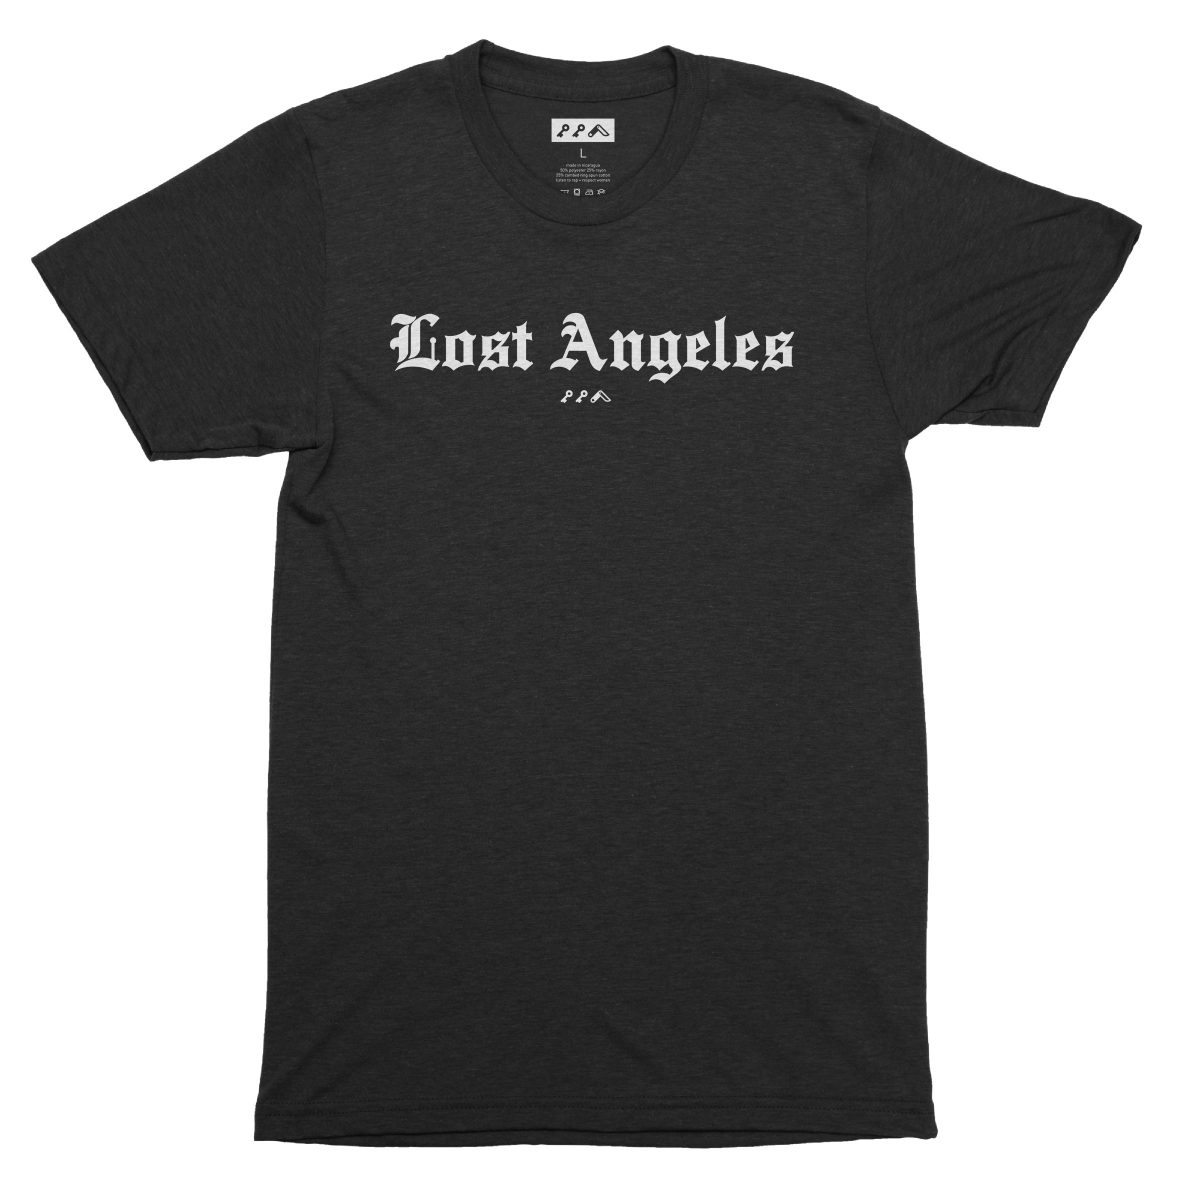 """Lost Angeles"" soft tri-blend t-shirts in solid black by KIKICUTT"